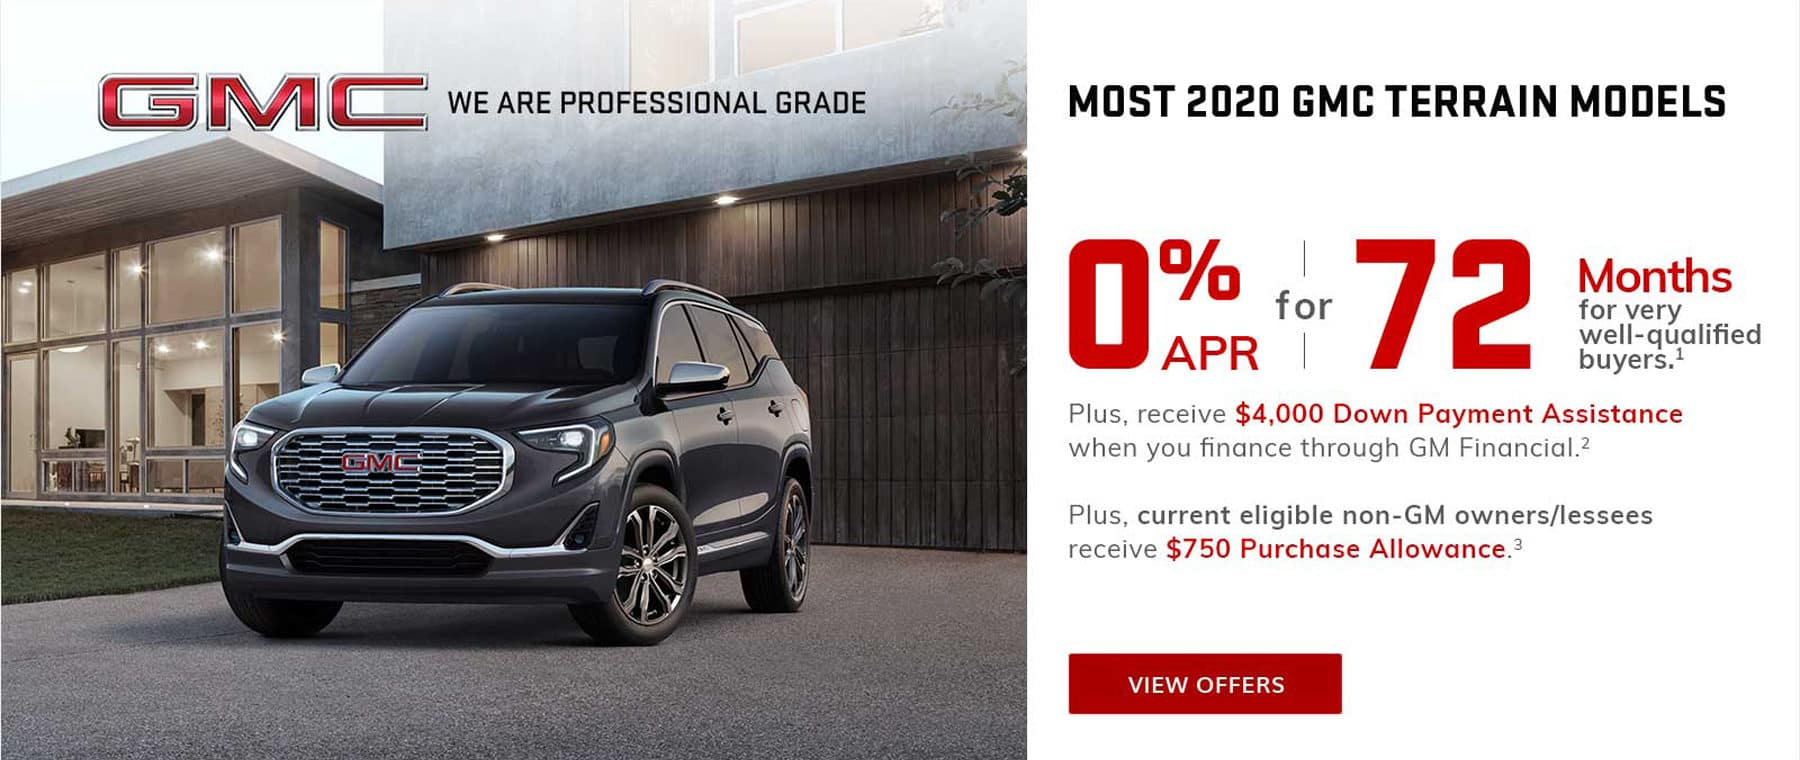 0% Financing for 72 months on GMC Terrain in West Bend WI